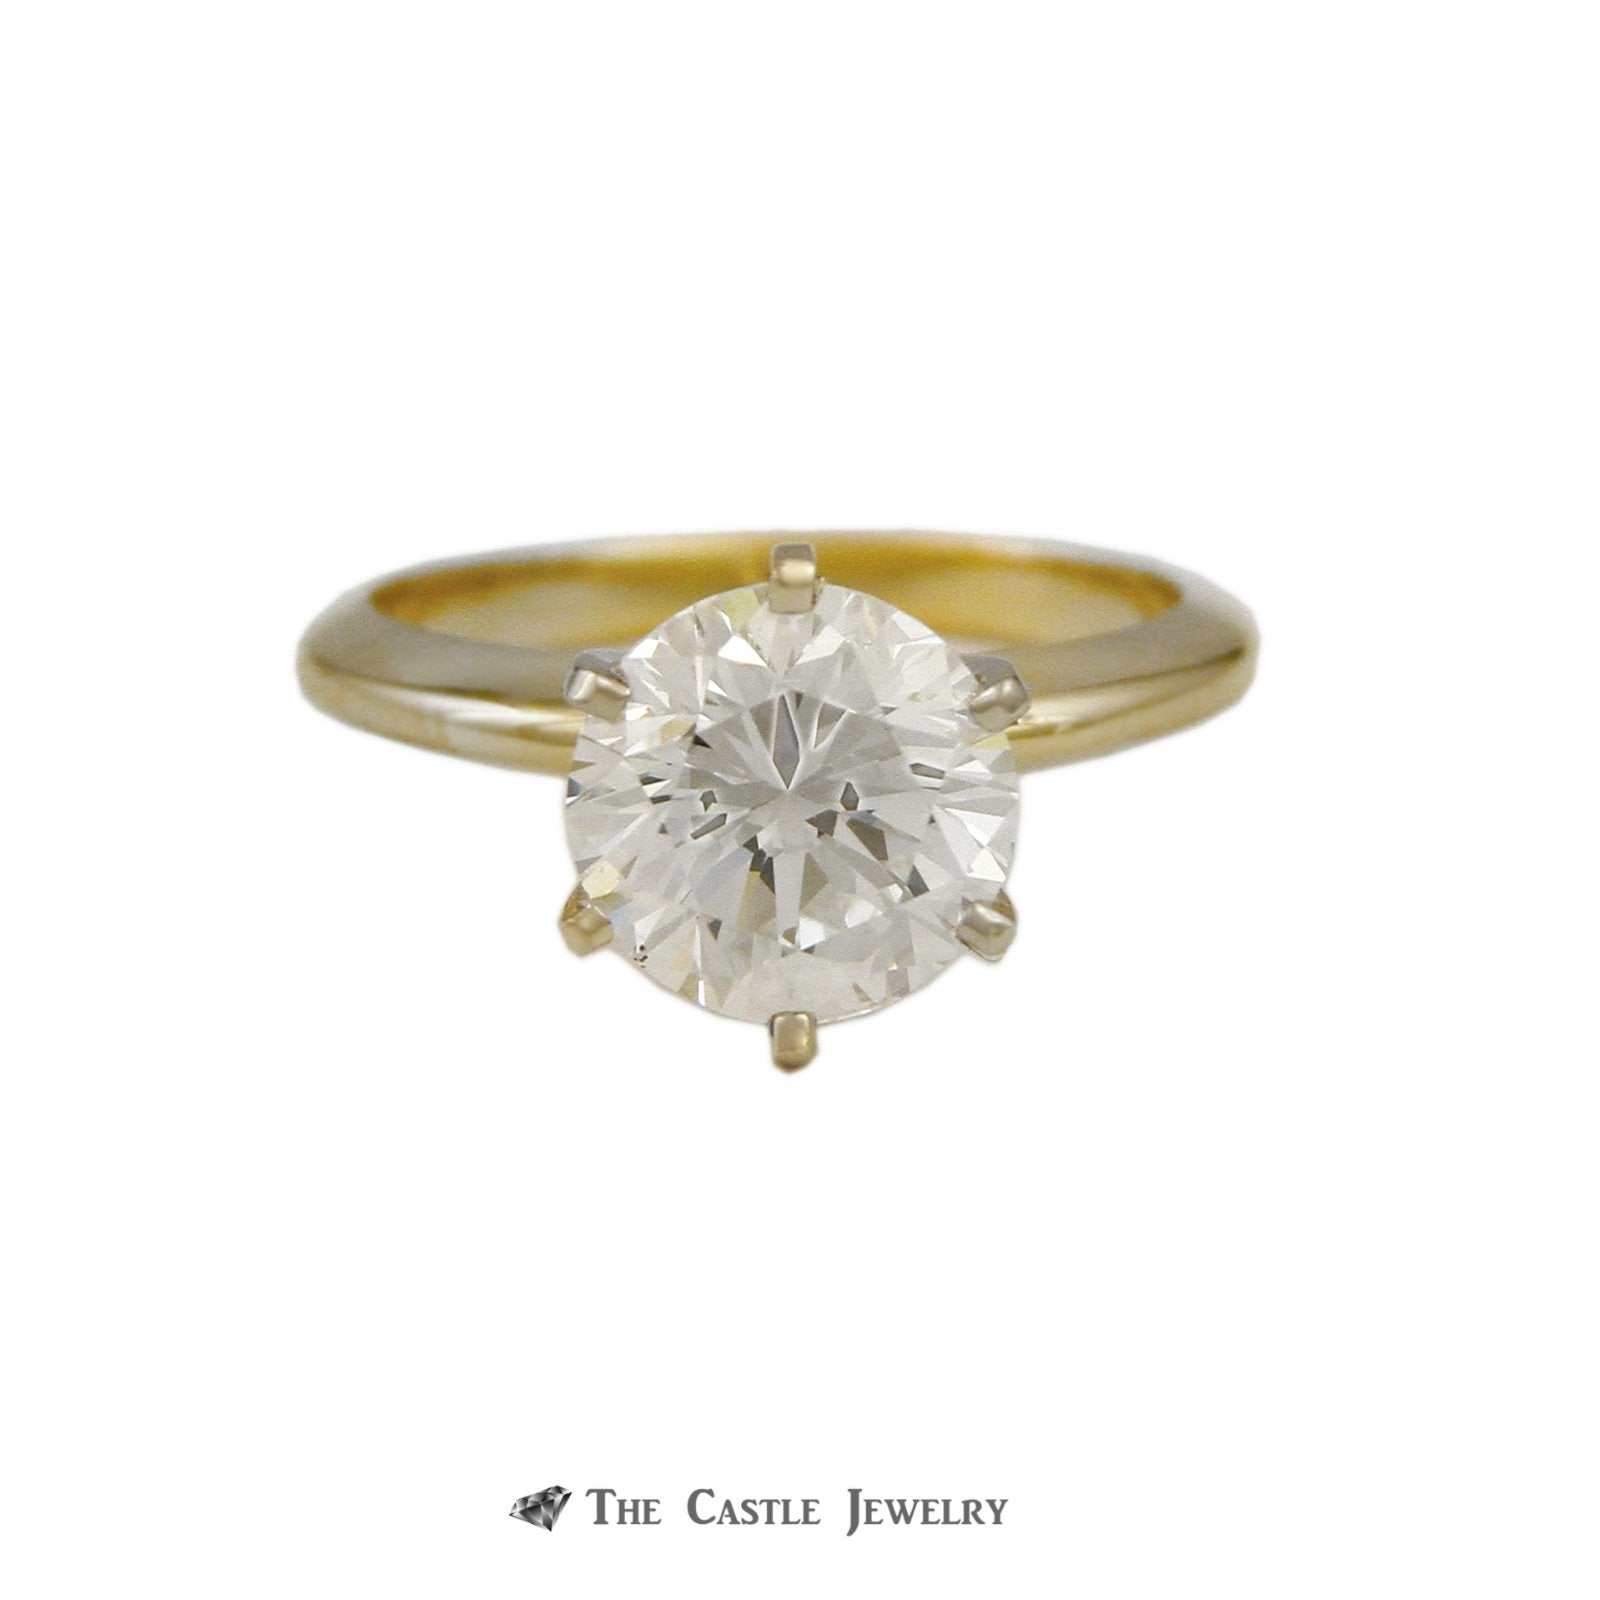 GIA Certified 3.03 carat SI1-G Round Brilliant Cut Solitaire Engagement Ring